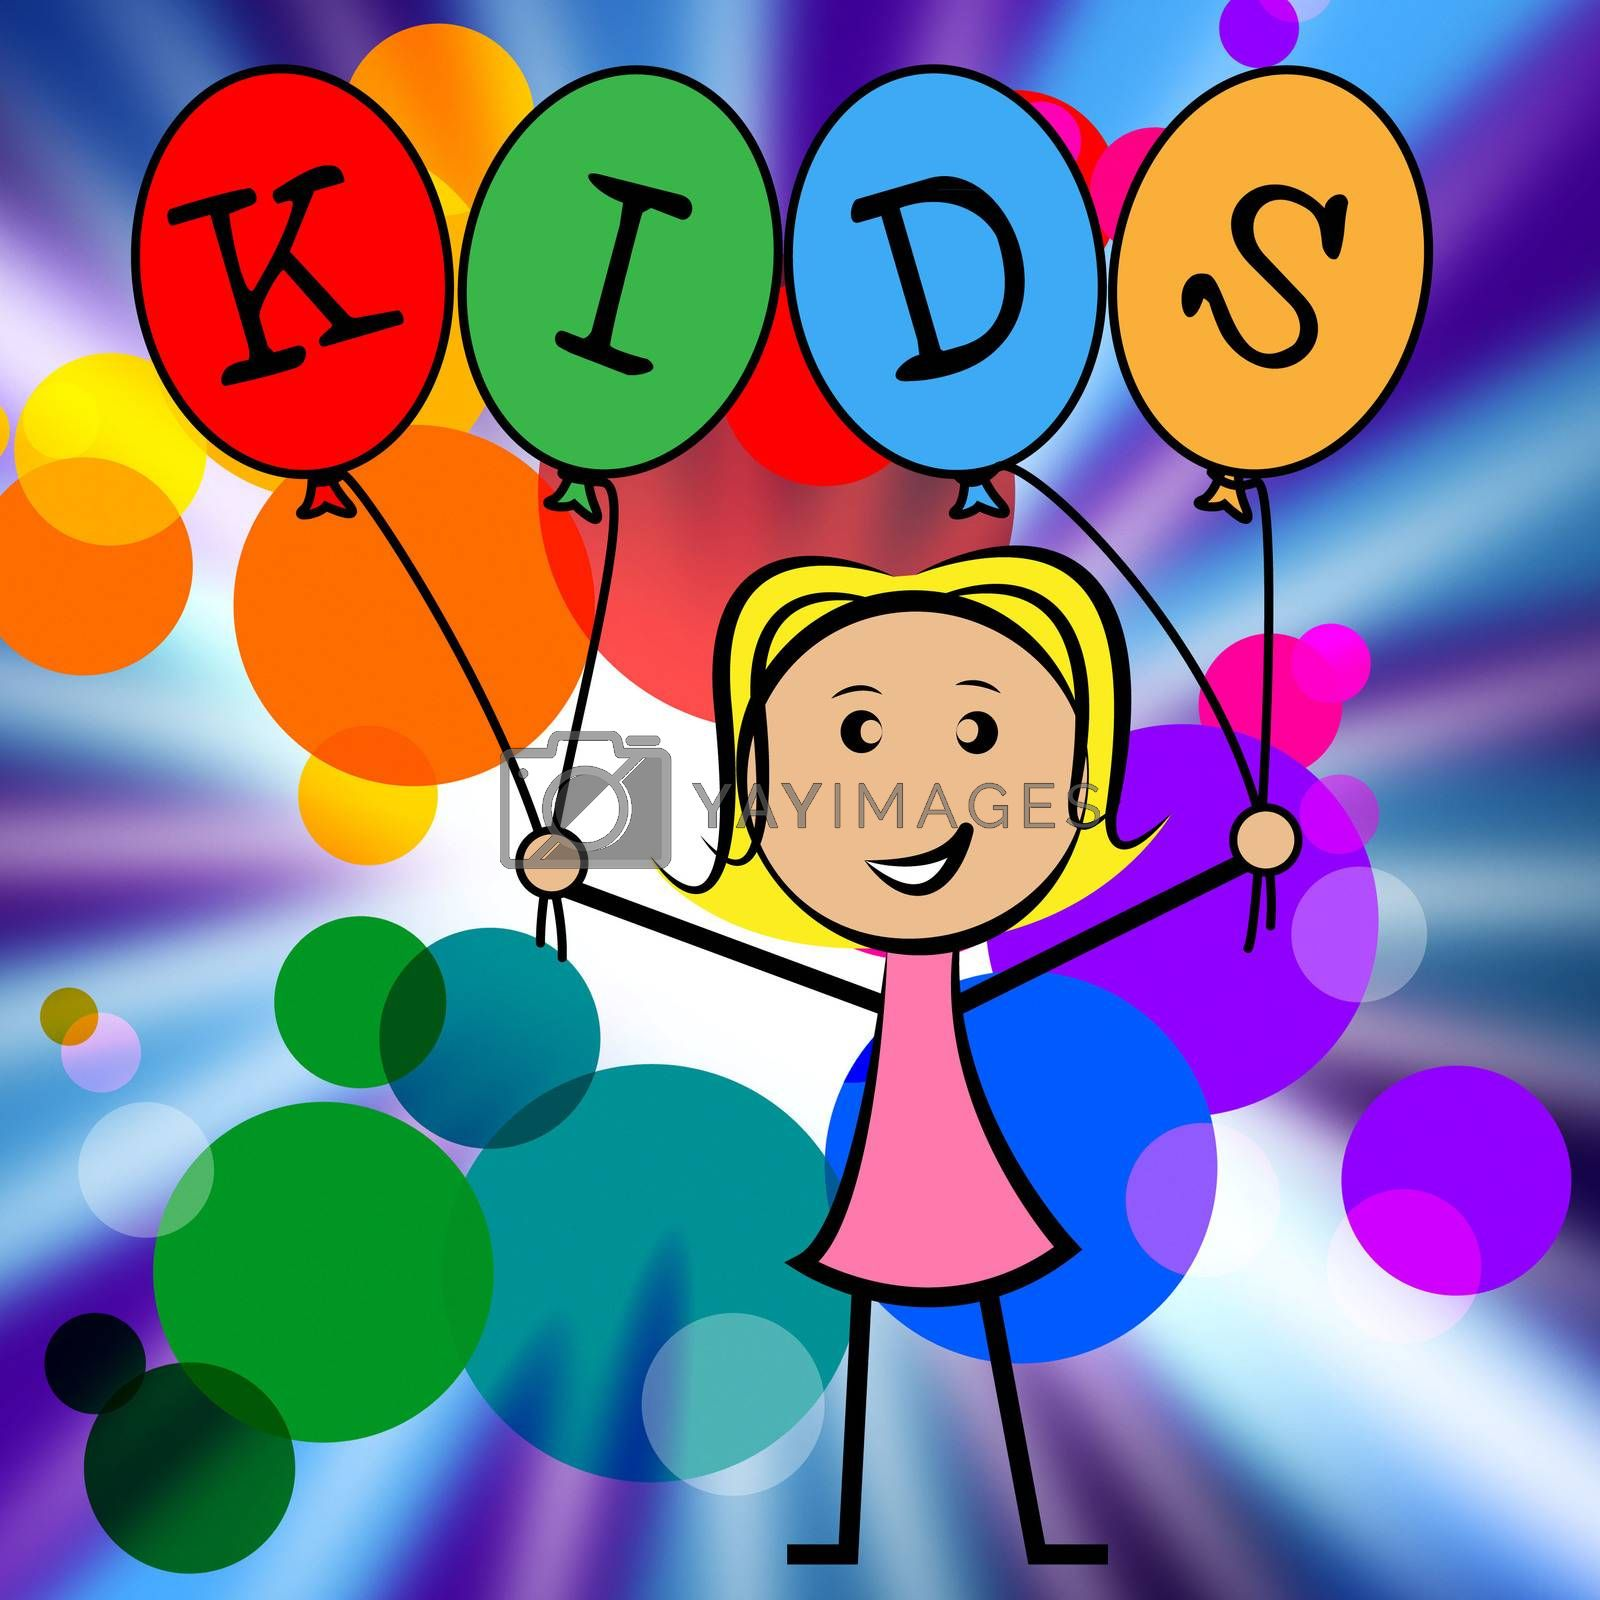 Kids Balloons Shows Youths Female And Youngster by stuartmiles